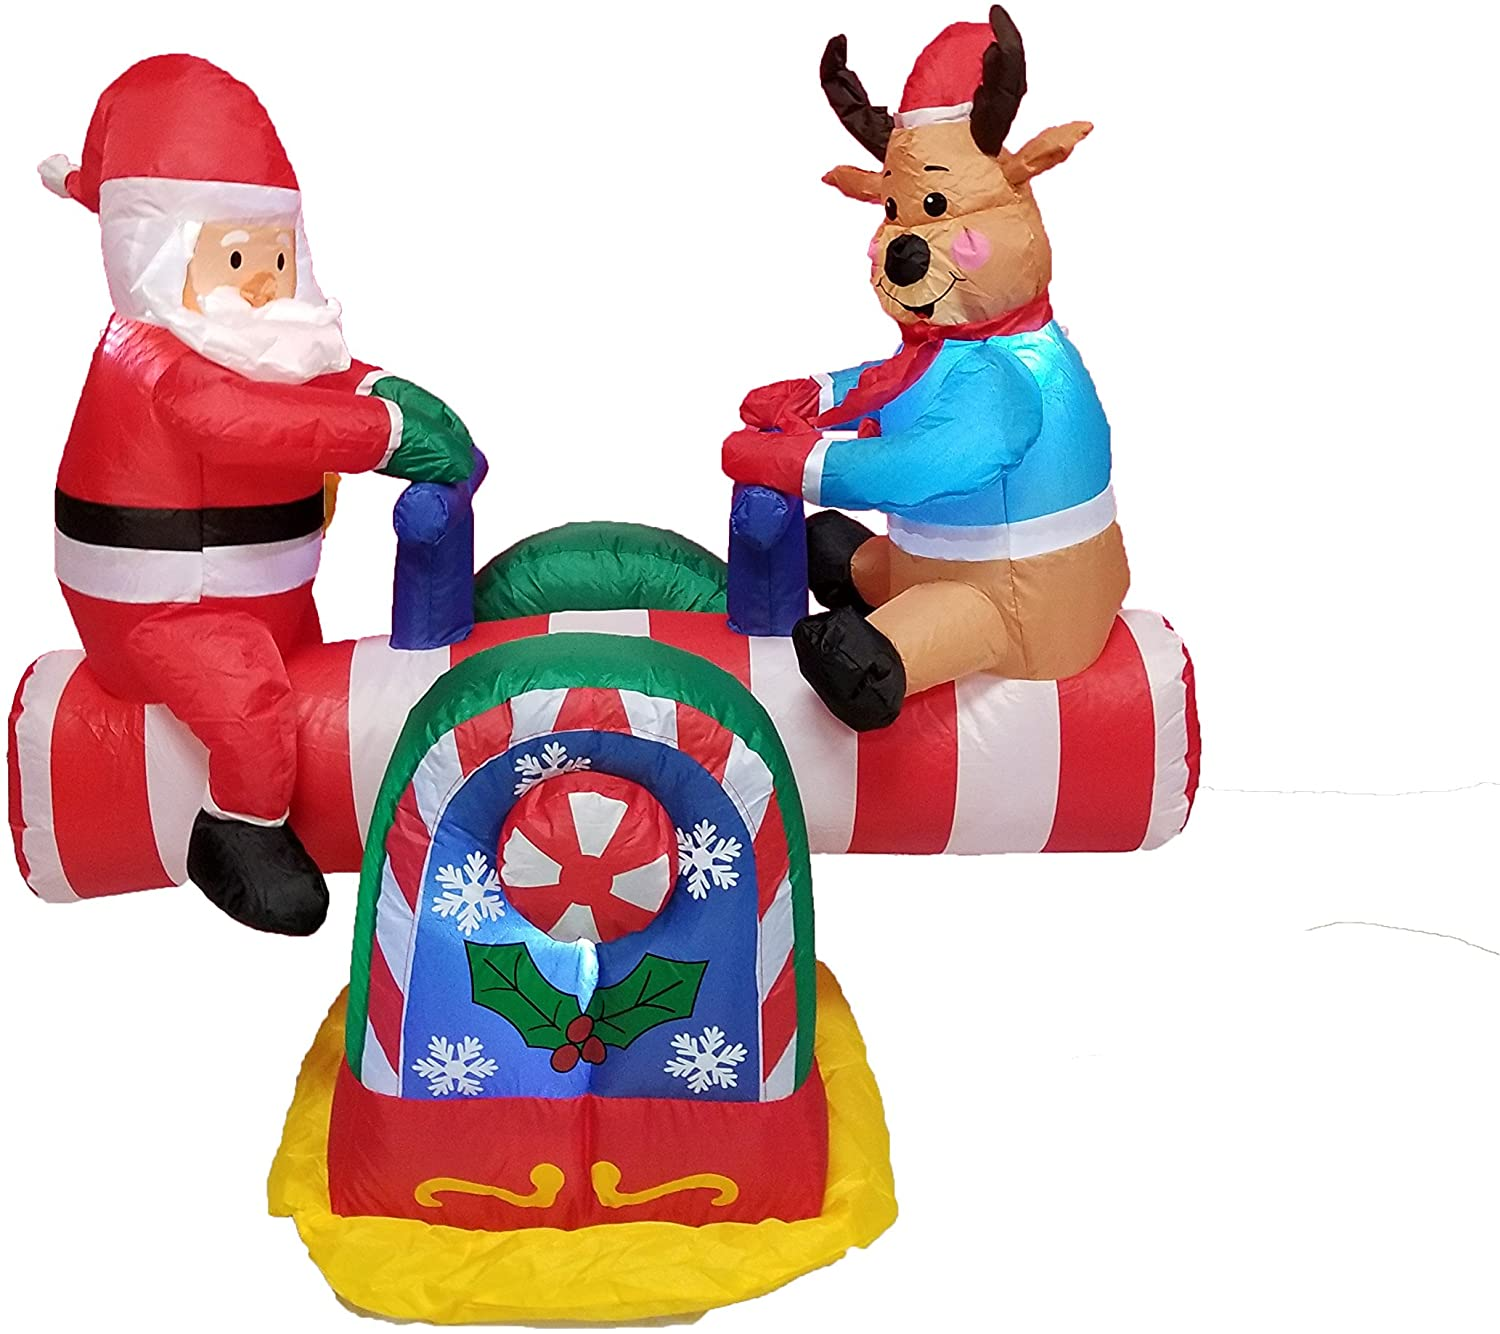 BZB Goods Animated Christmas Inflatable Santa Claus and Reindeer on Teeter Totter